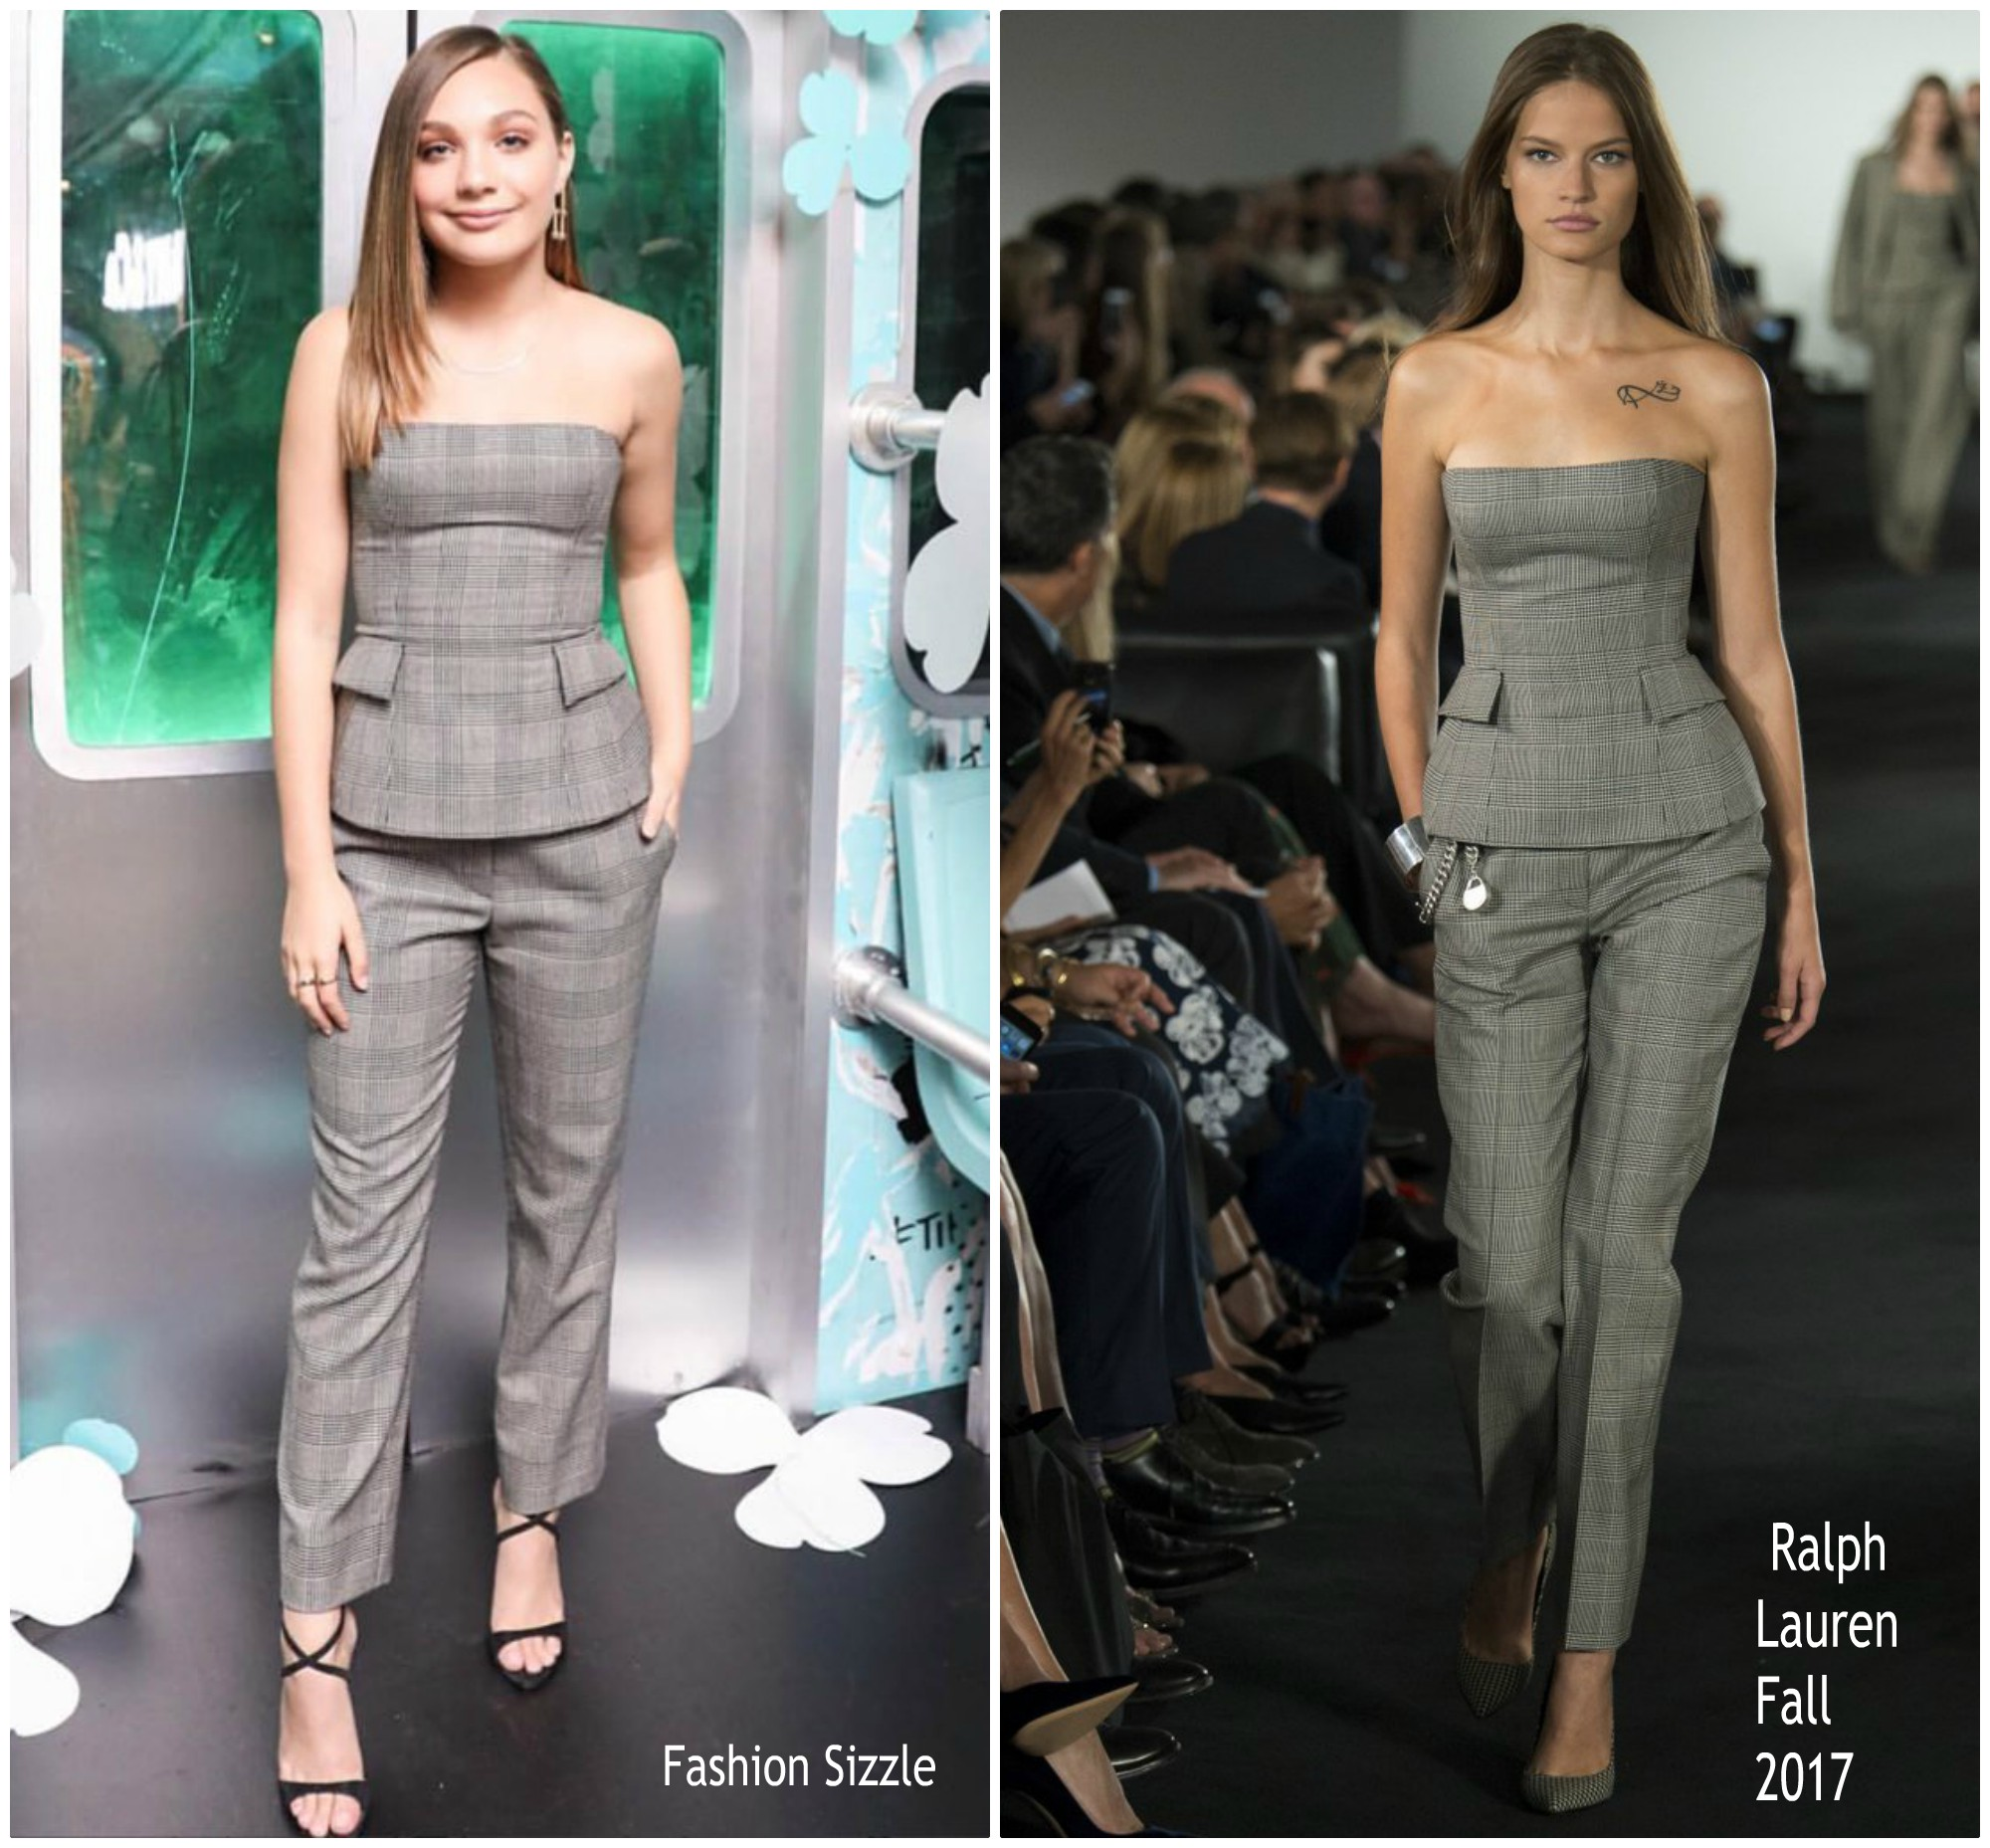 maddie-ziegler-in-ralph-lauren-tiffany-co-paper-flowers-event-and-believe-in-dreams-campaign-launch